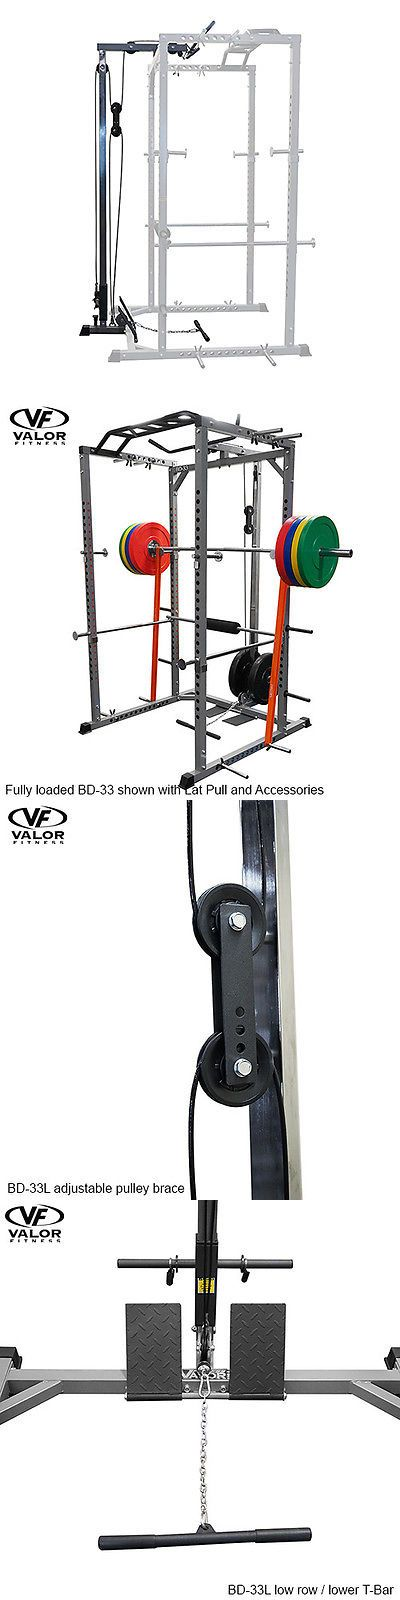 17 Best Ideas About Power Rack On Pinterest Homemade Gym